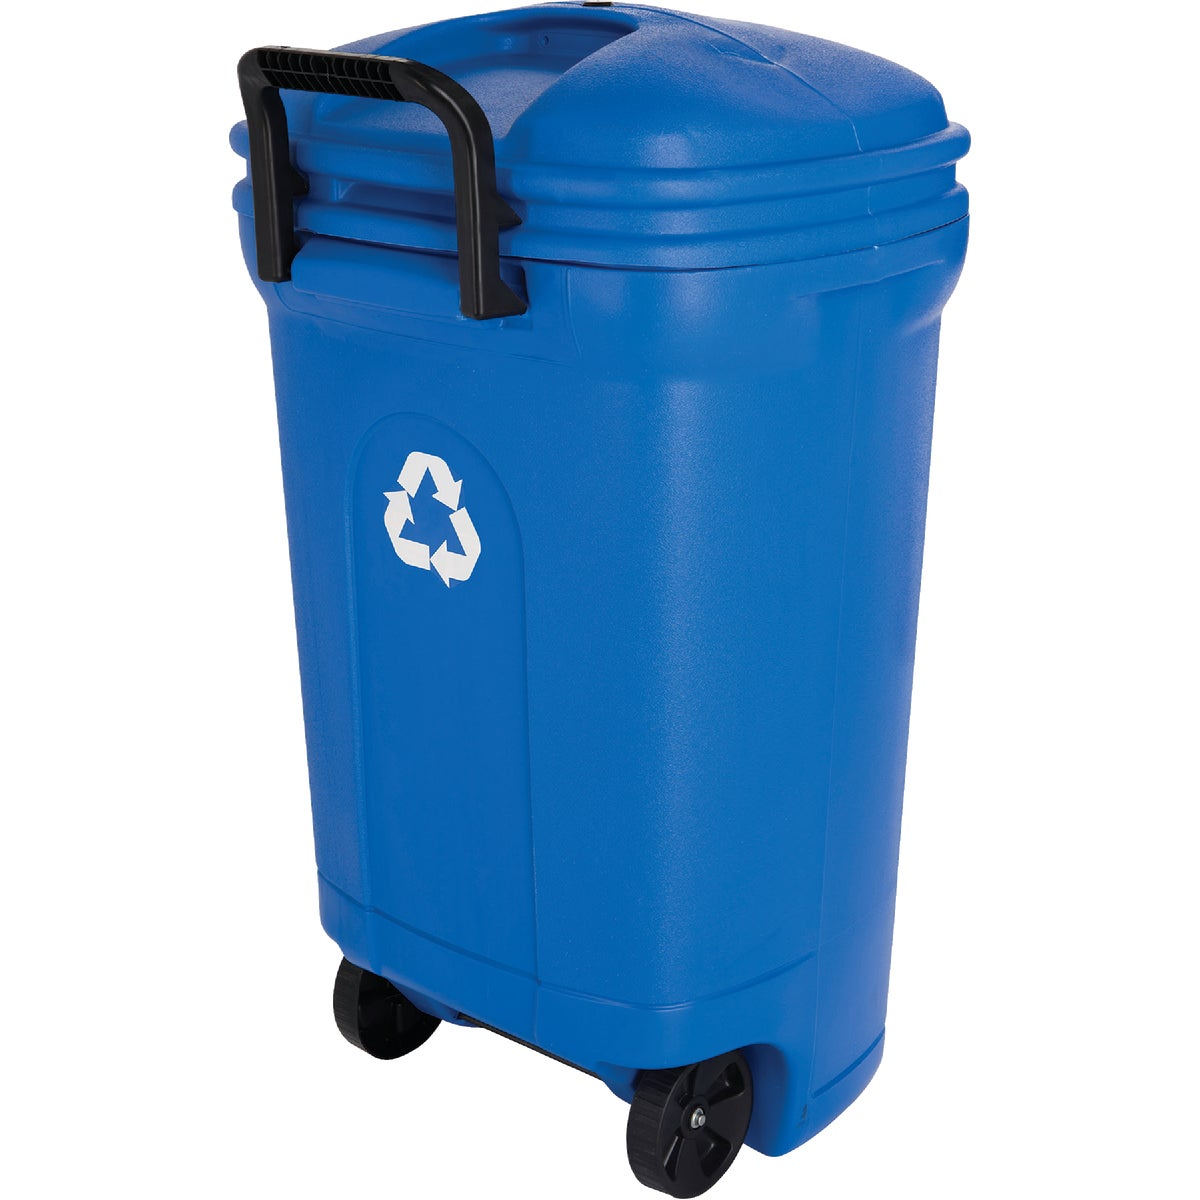 34GAL RECYCLE TRASH CAN